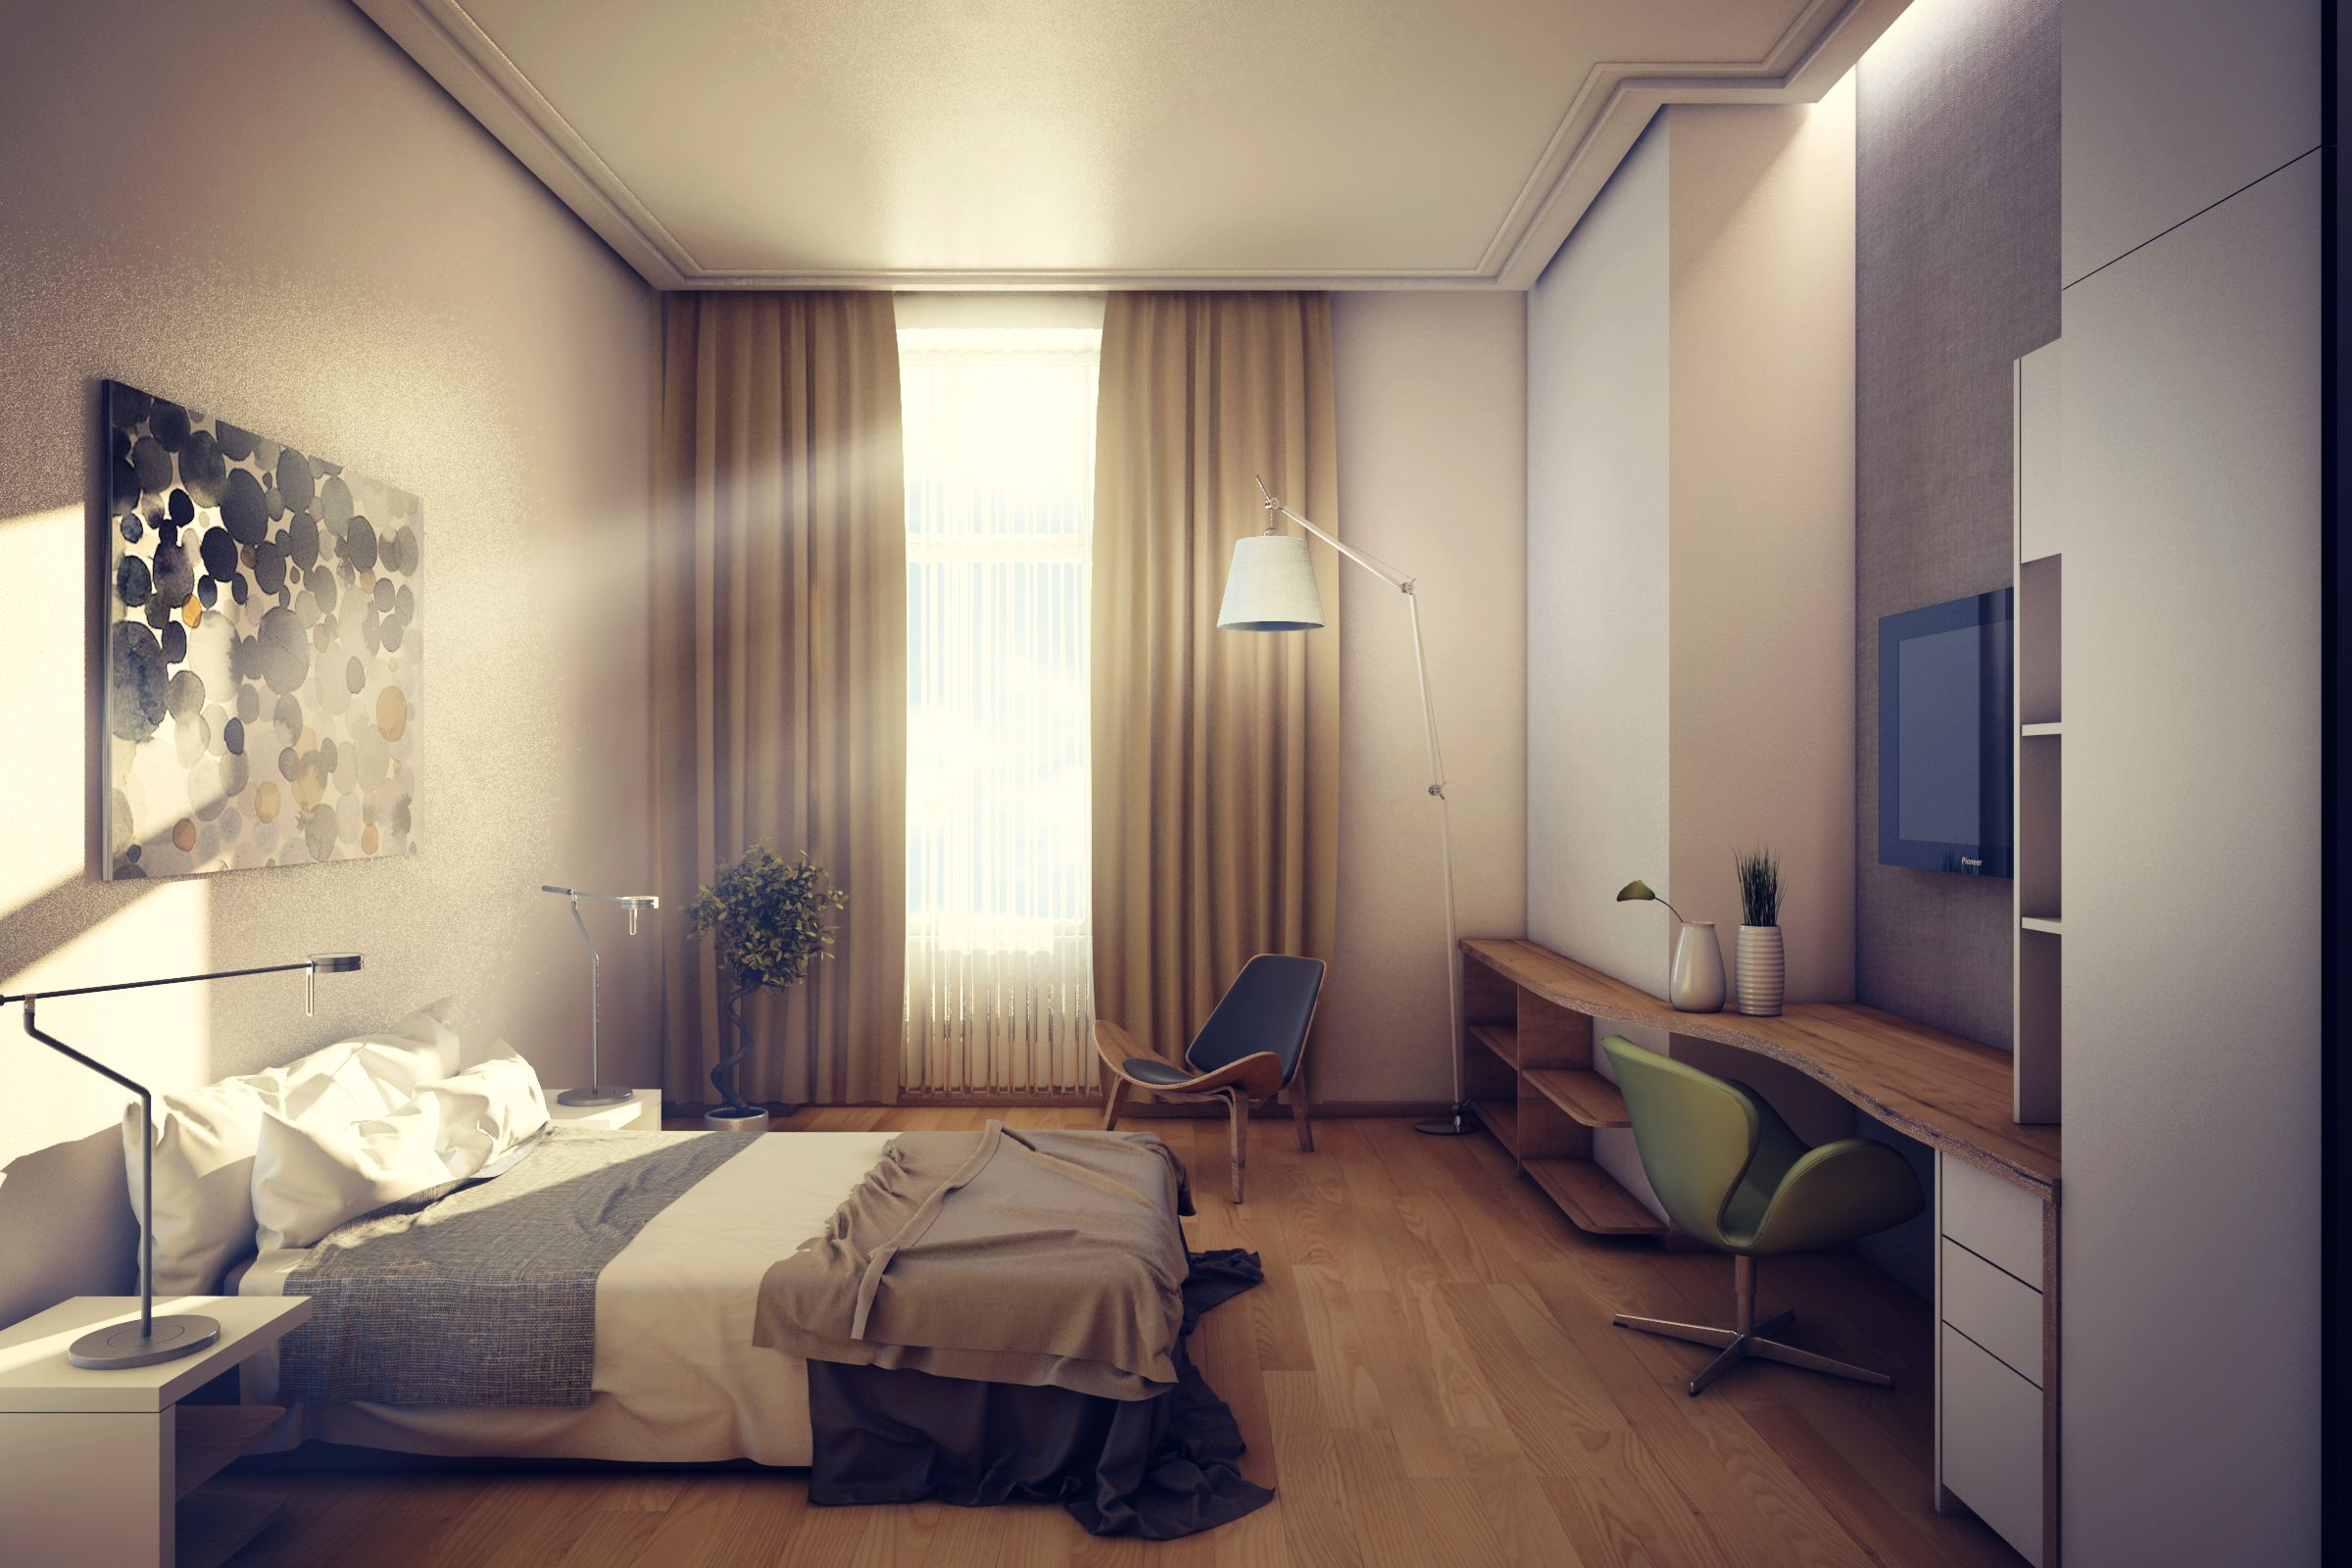 Hotel room interior design 3d modelling rendering and for Hotel room interior design